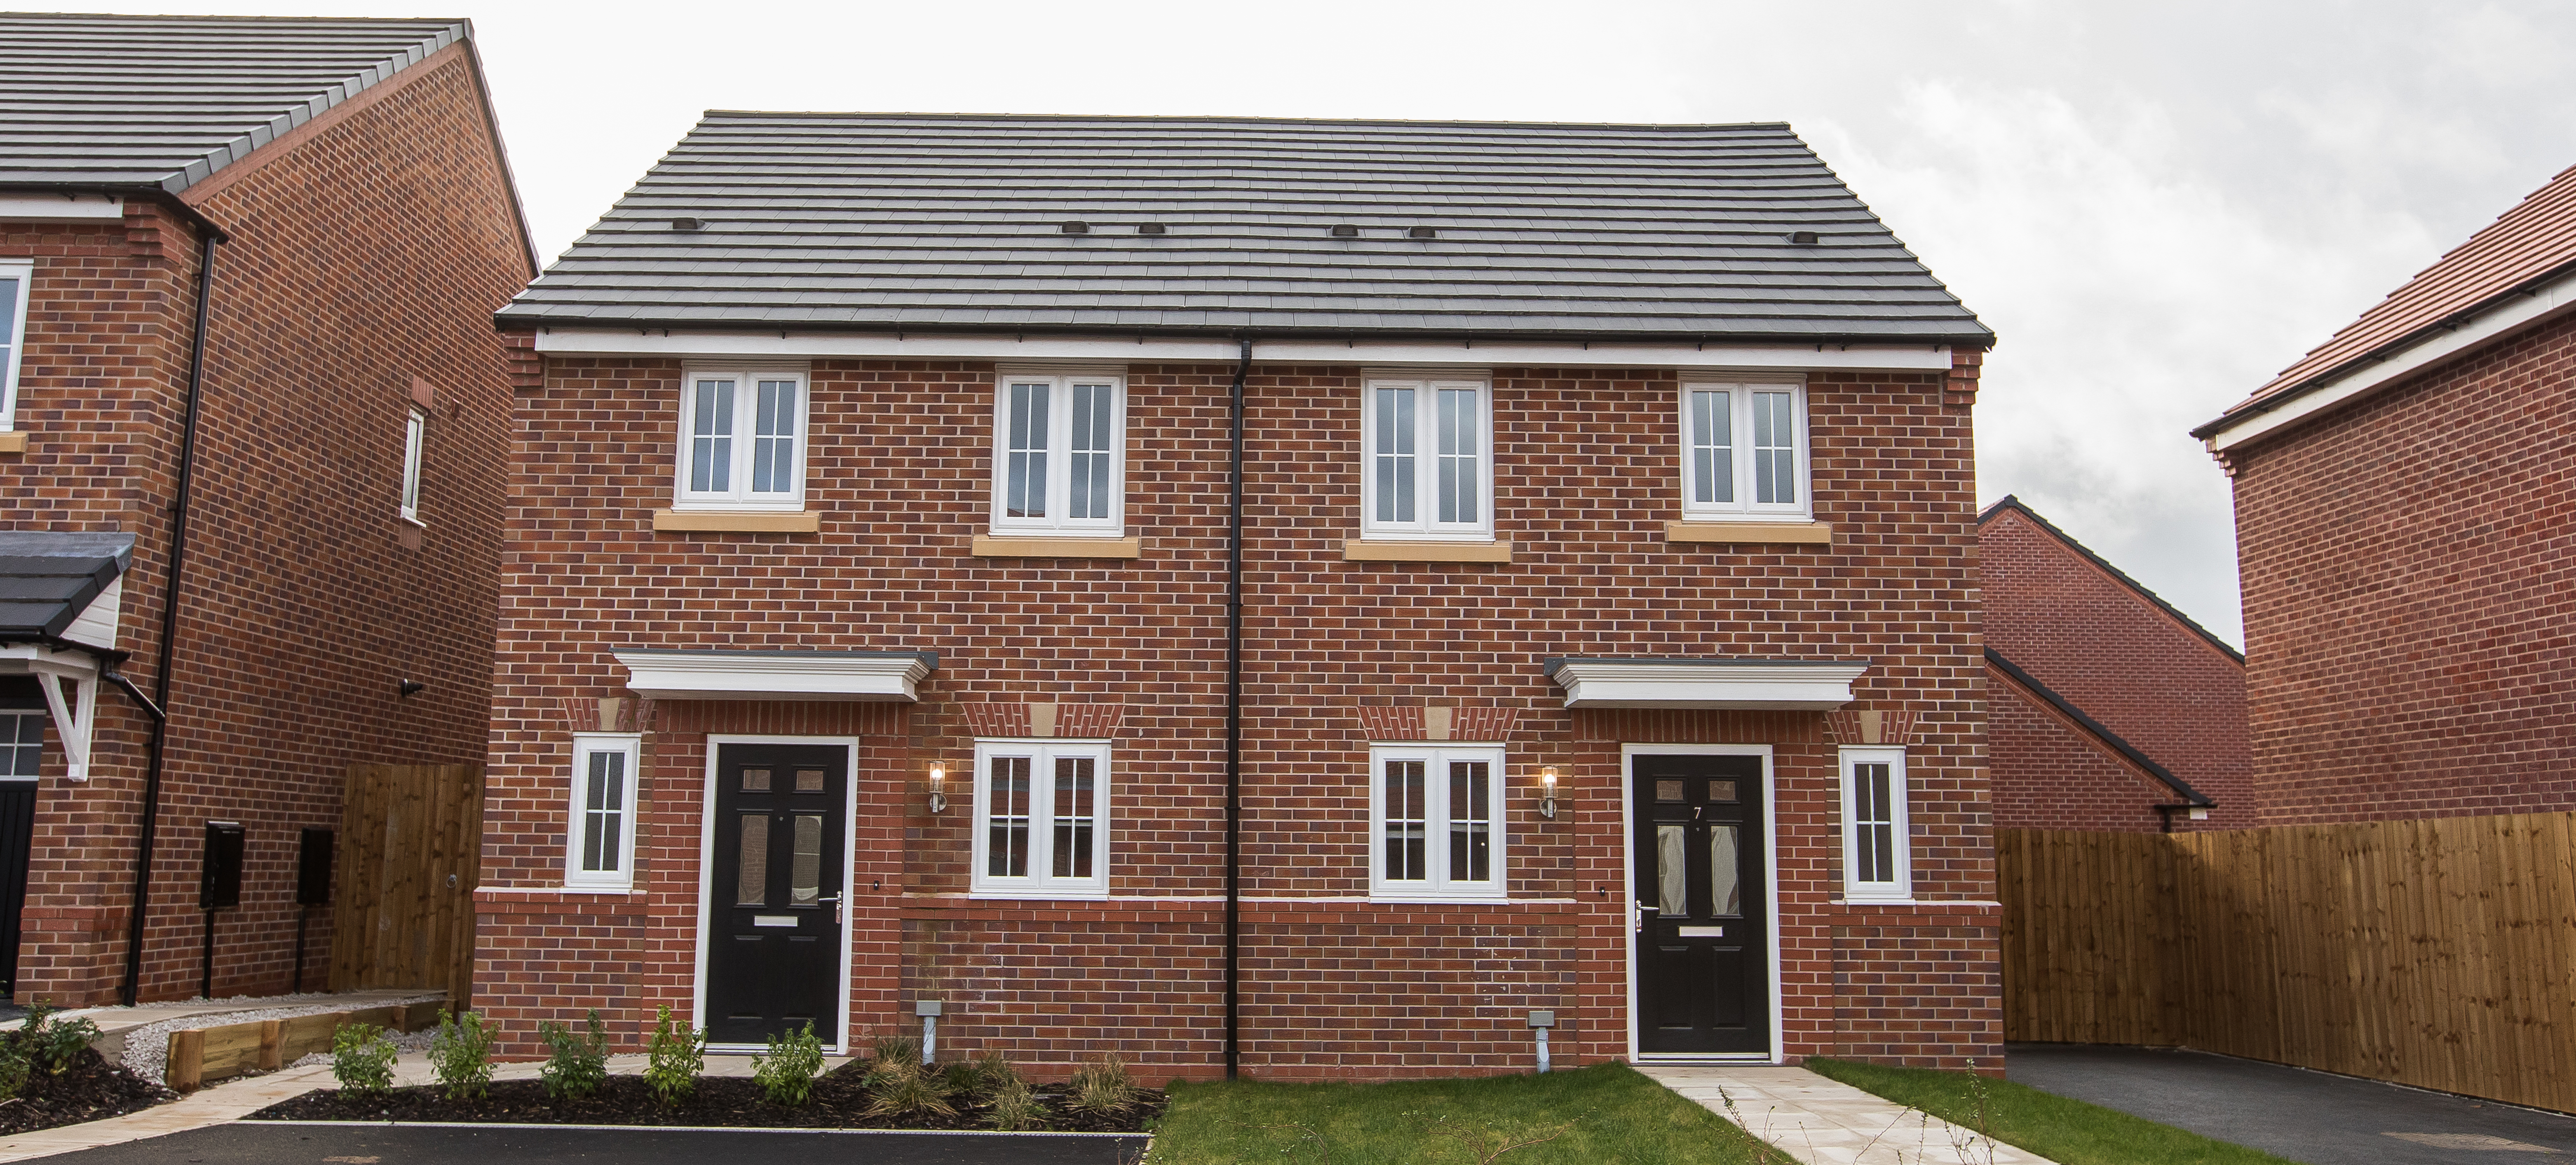 Downsizing made easy with shared ownership